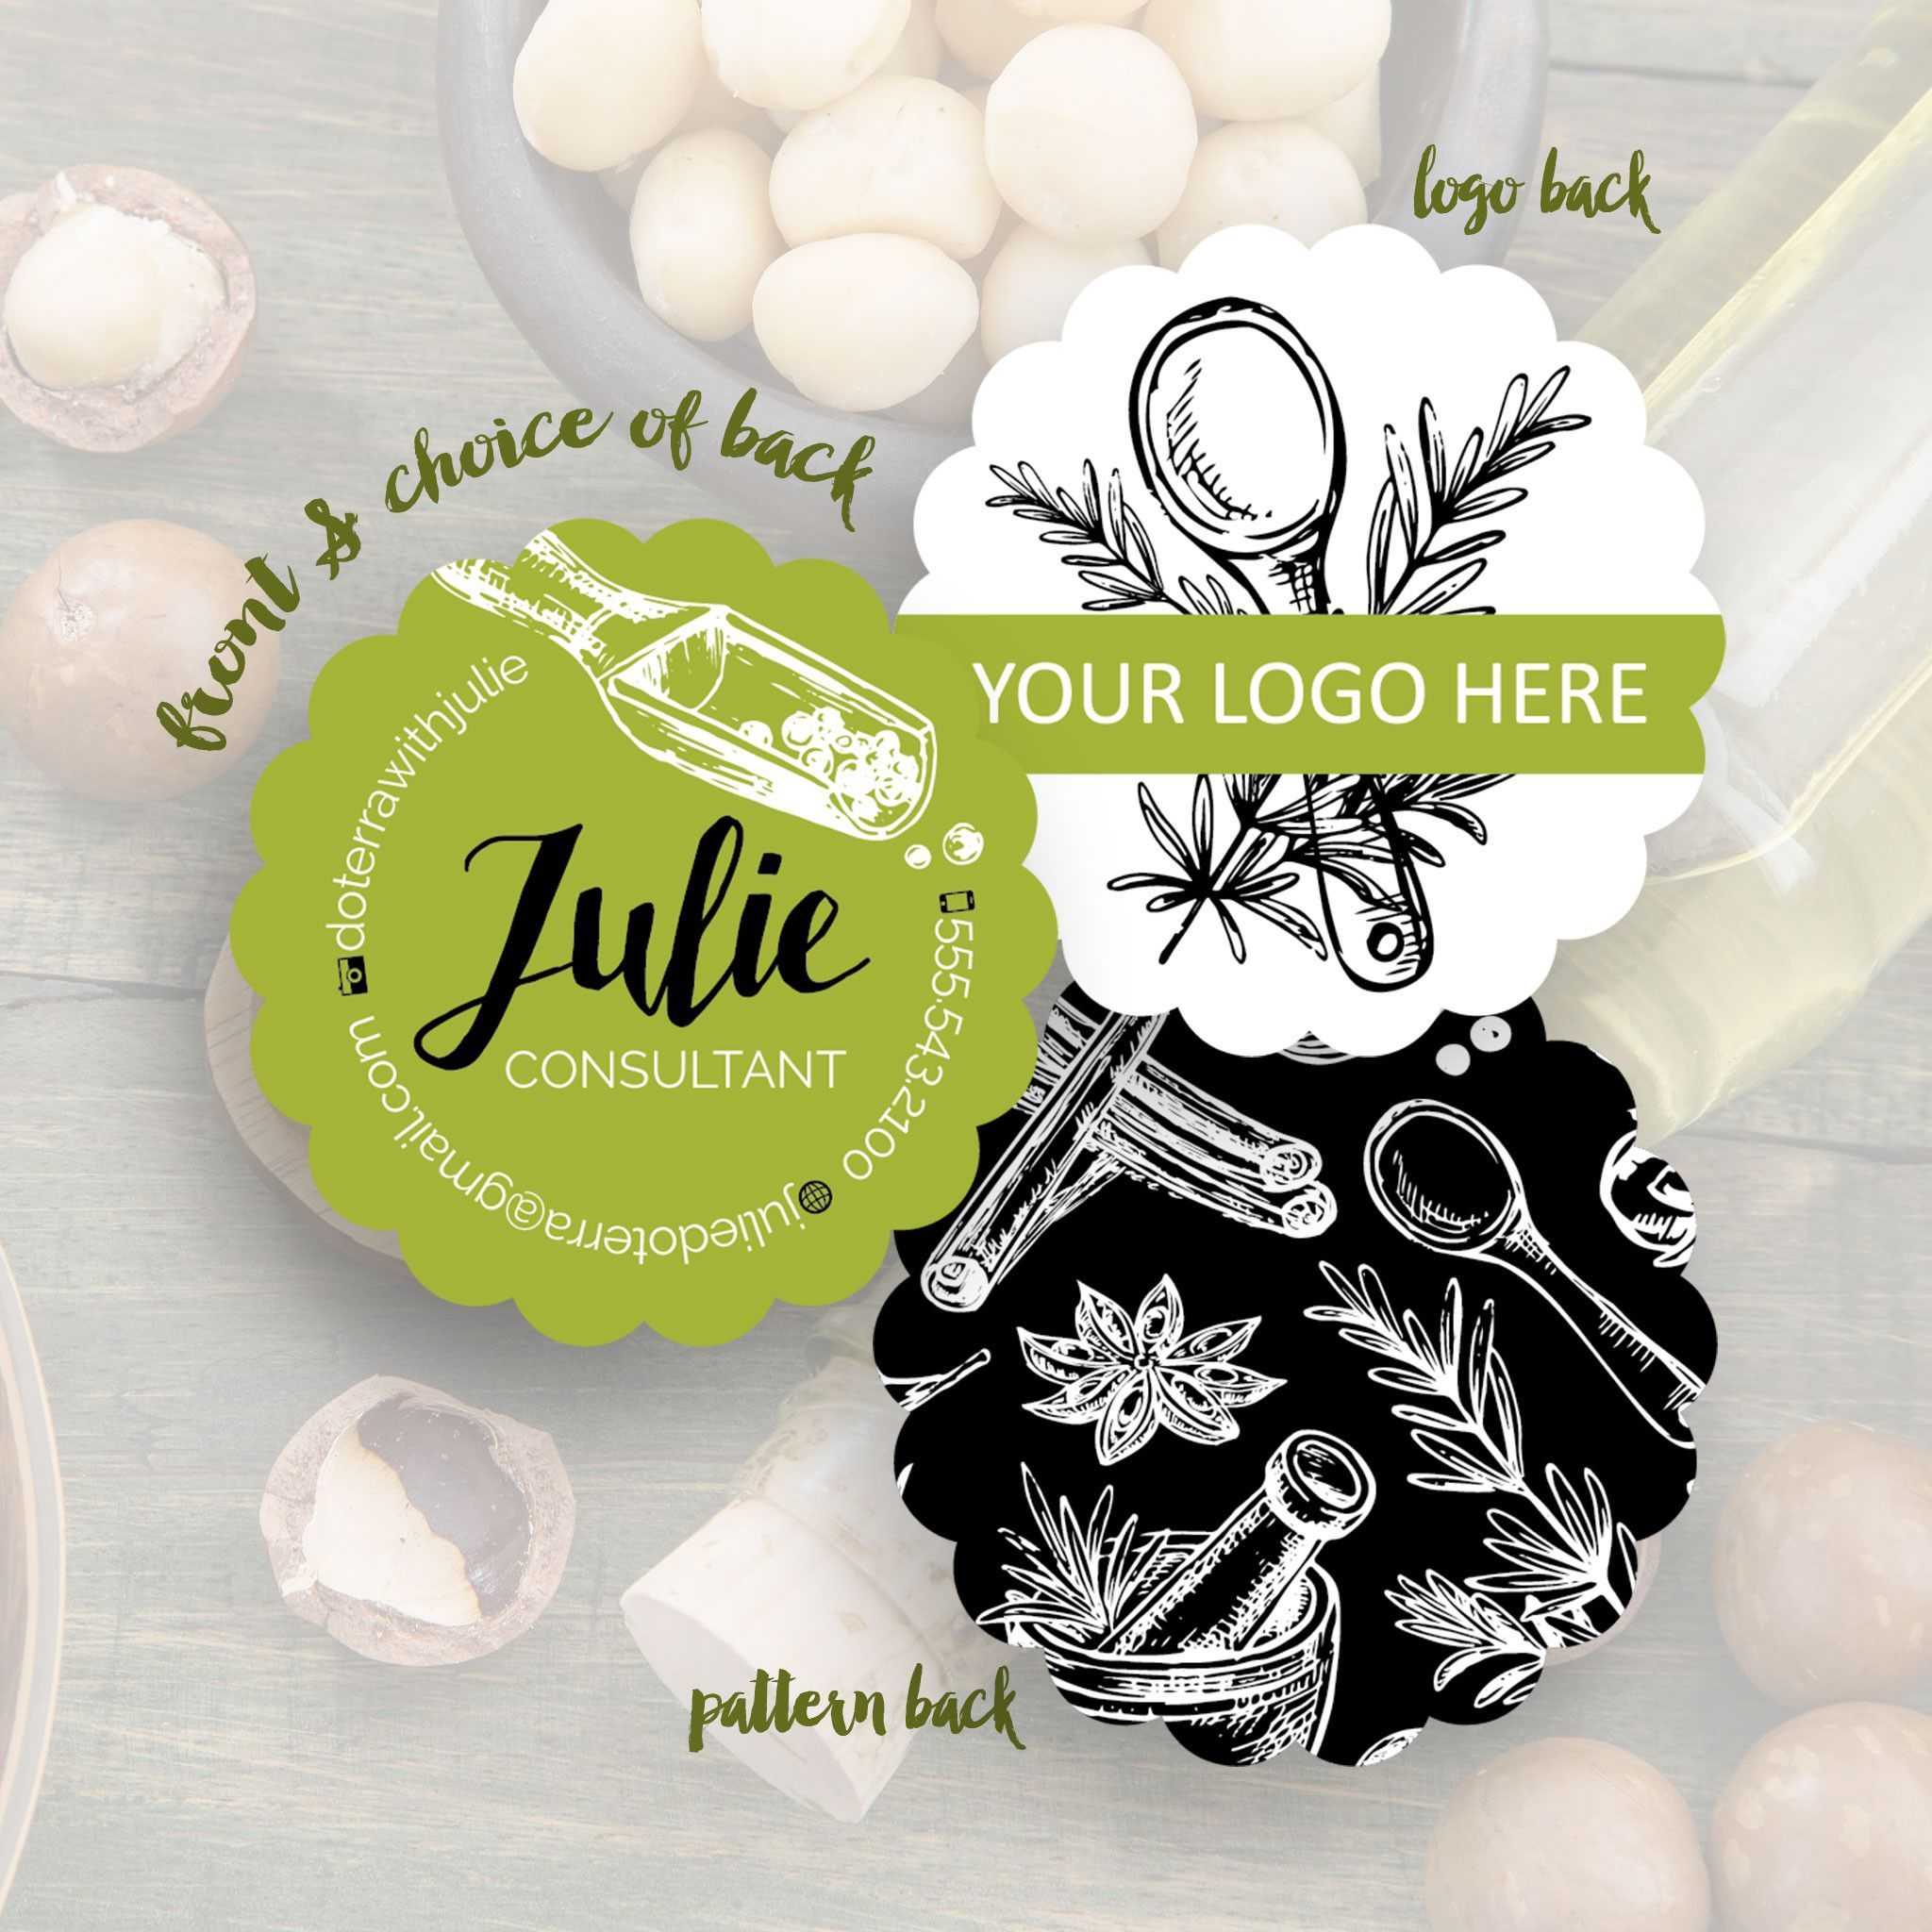 Julie Business Cards Business Cards Business And Logos